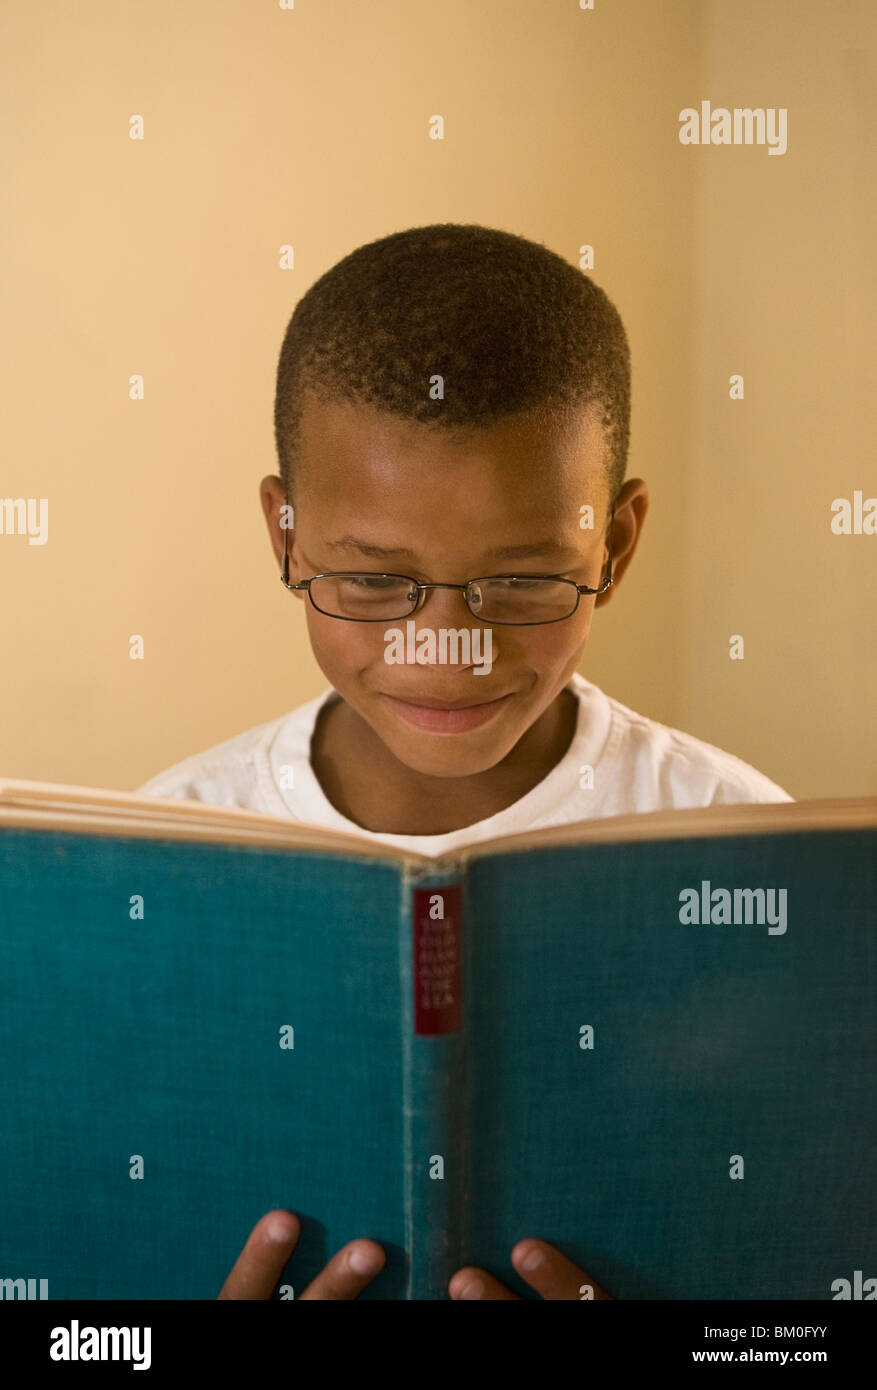 Boy (8-9) smiling while reading book, St Francis Bay, Sea Vista, Eastern Cape Province, South Africa - Stock Image